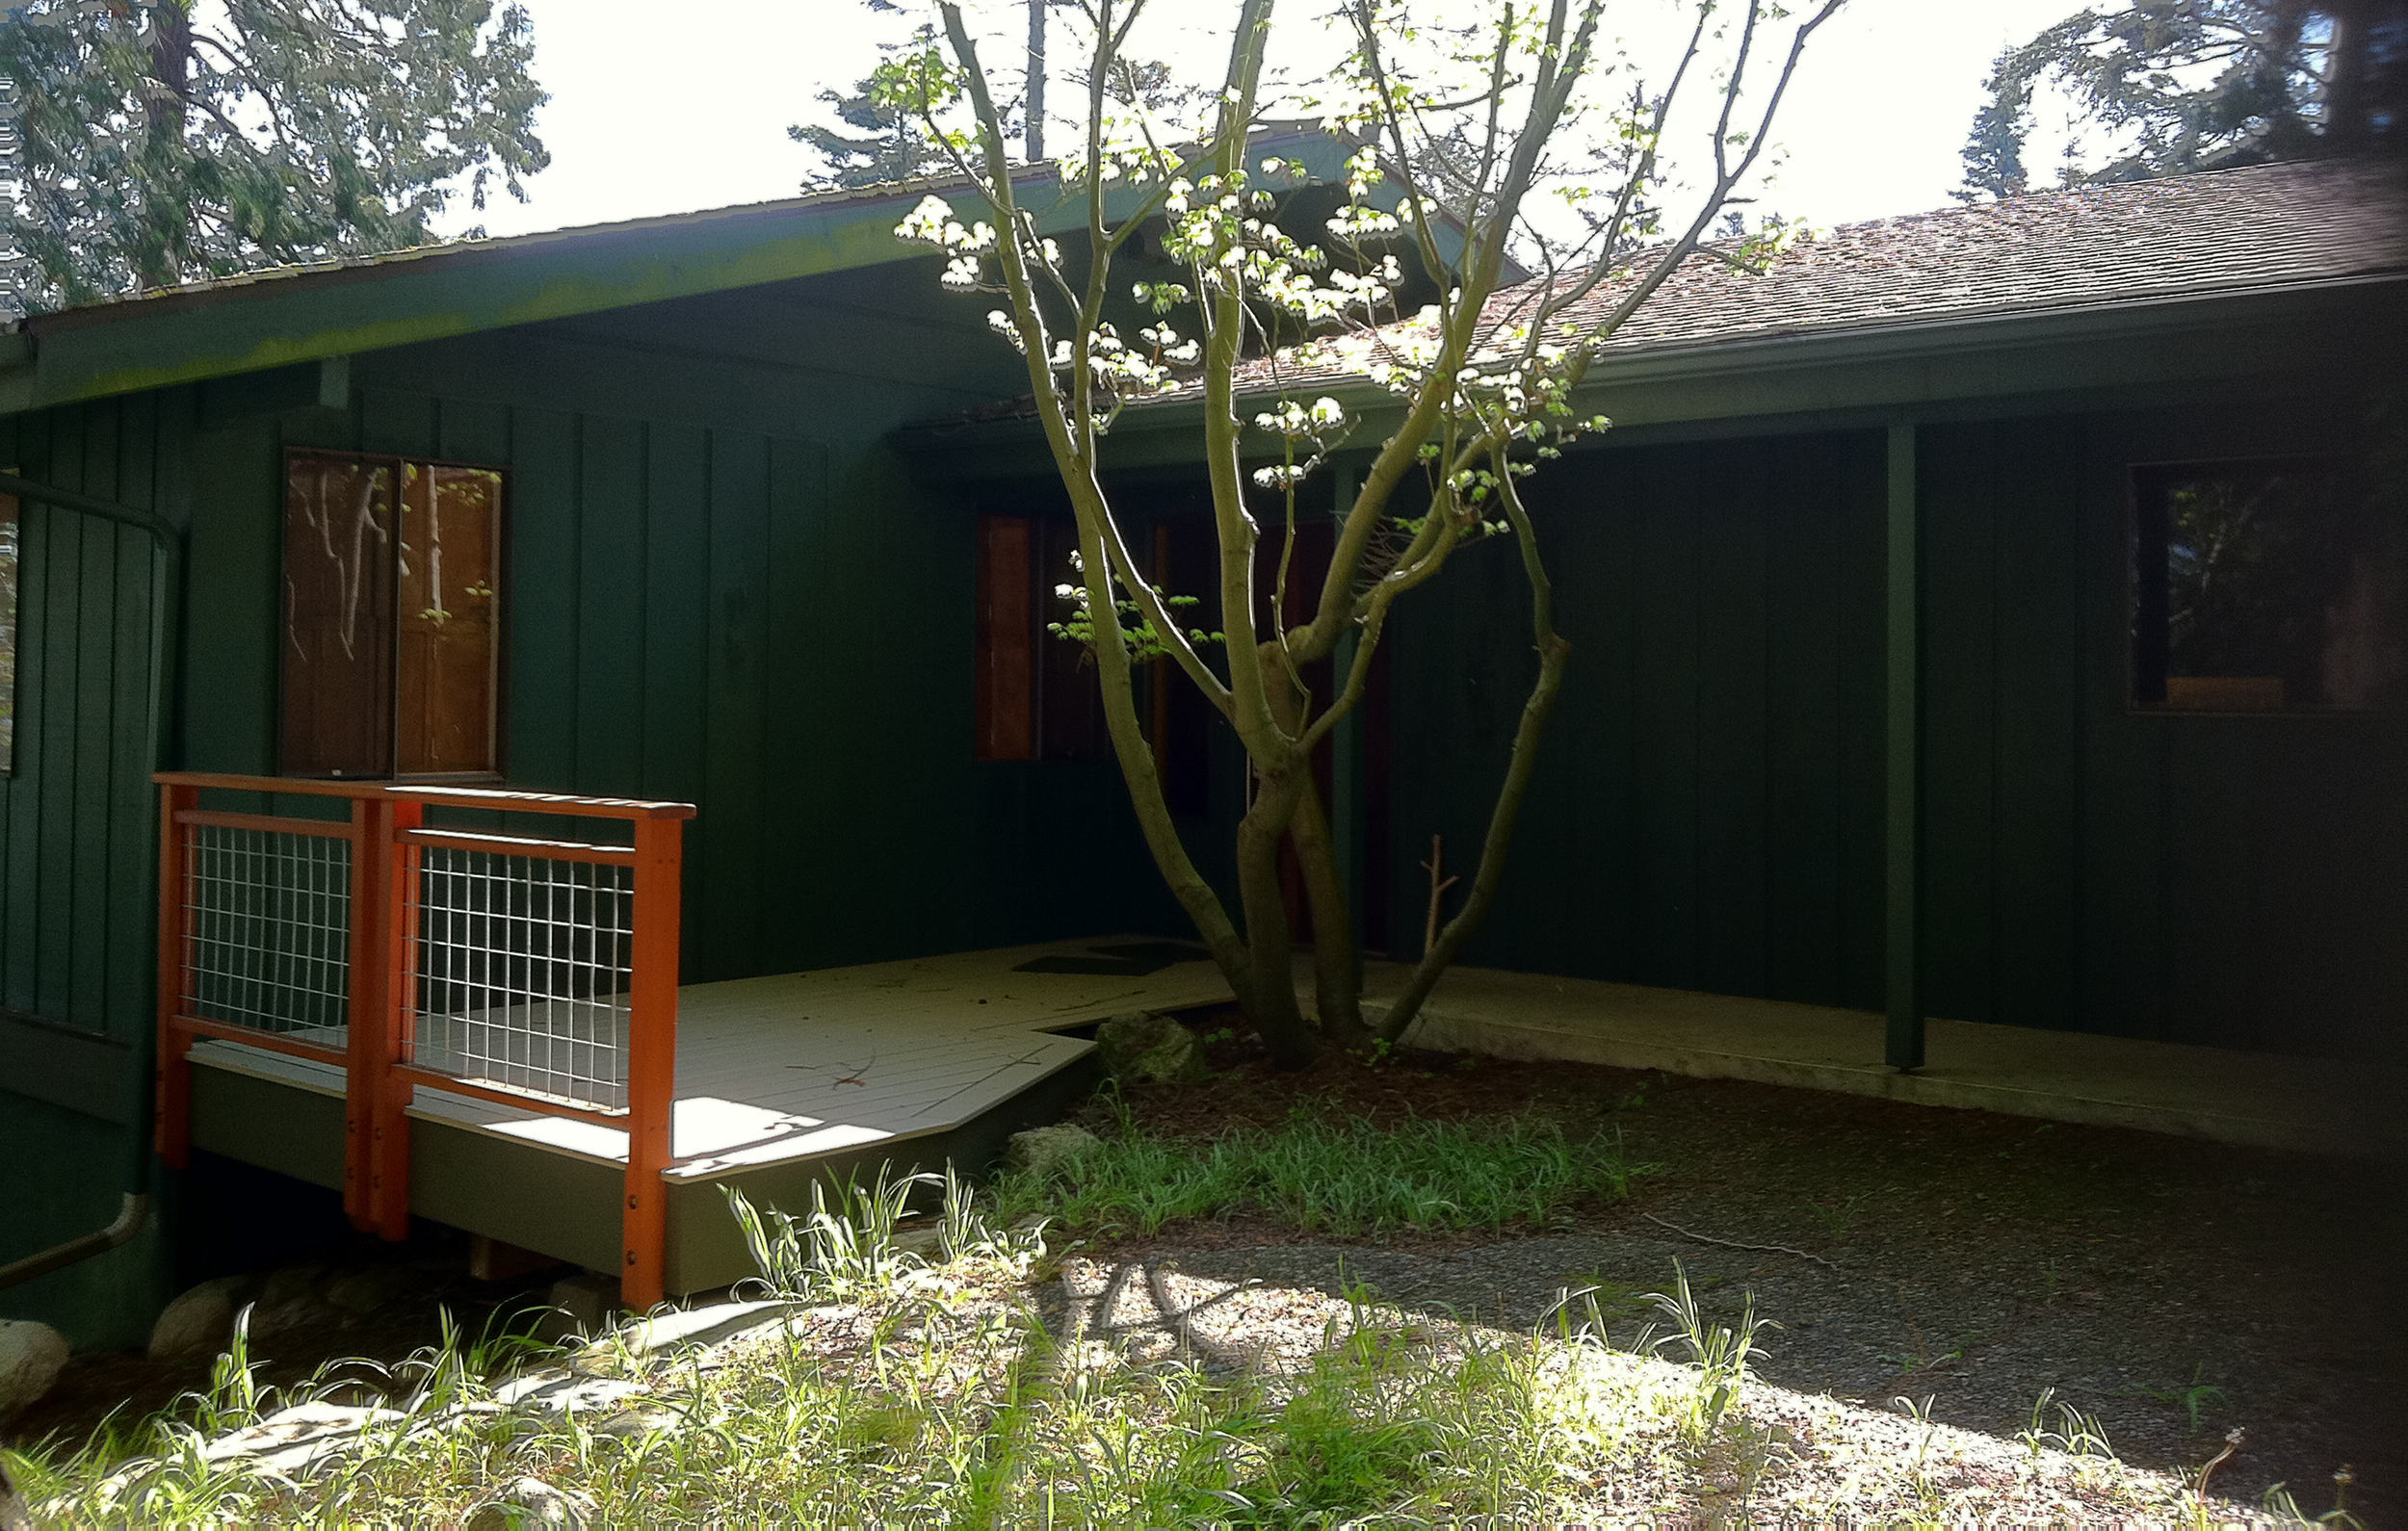 Before picture of home entry- T-111 siding with mold, old fashioned aluminum windows, no trim. Deck new from phase 1......